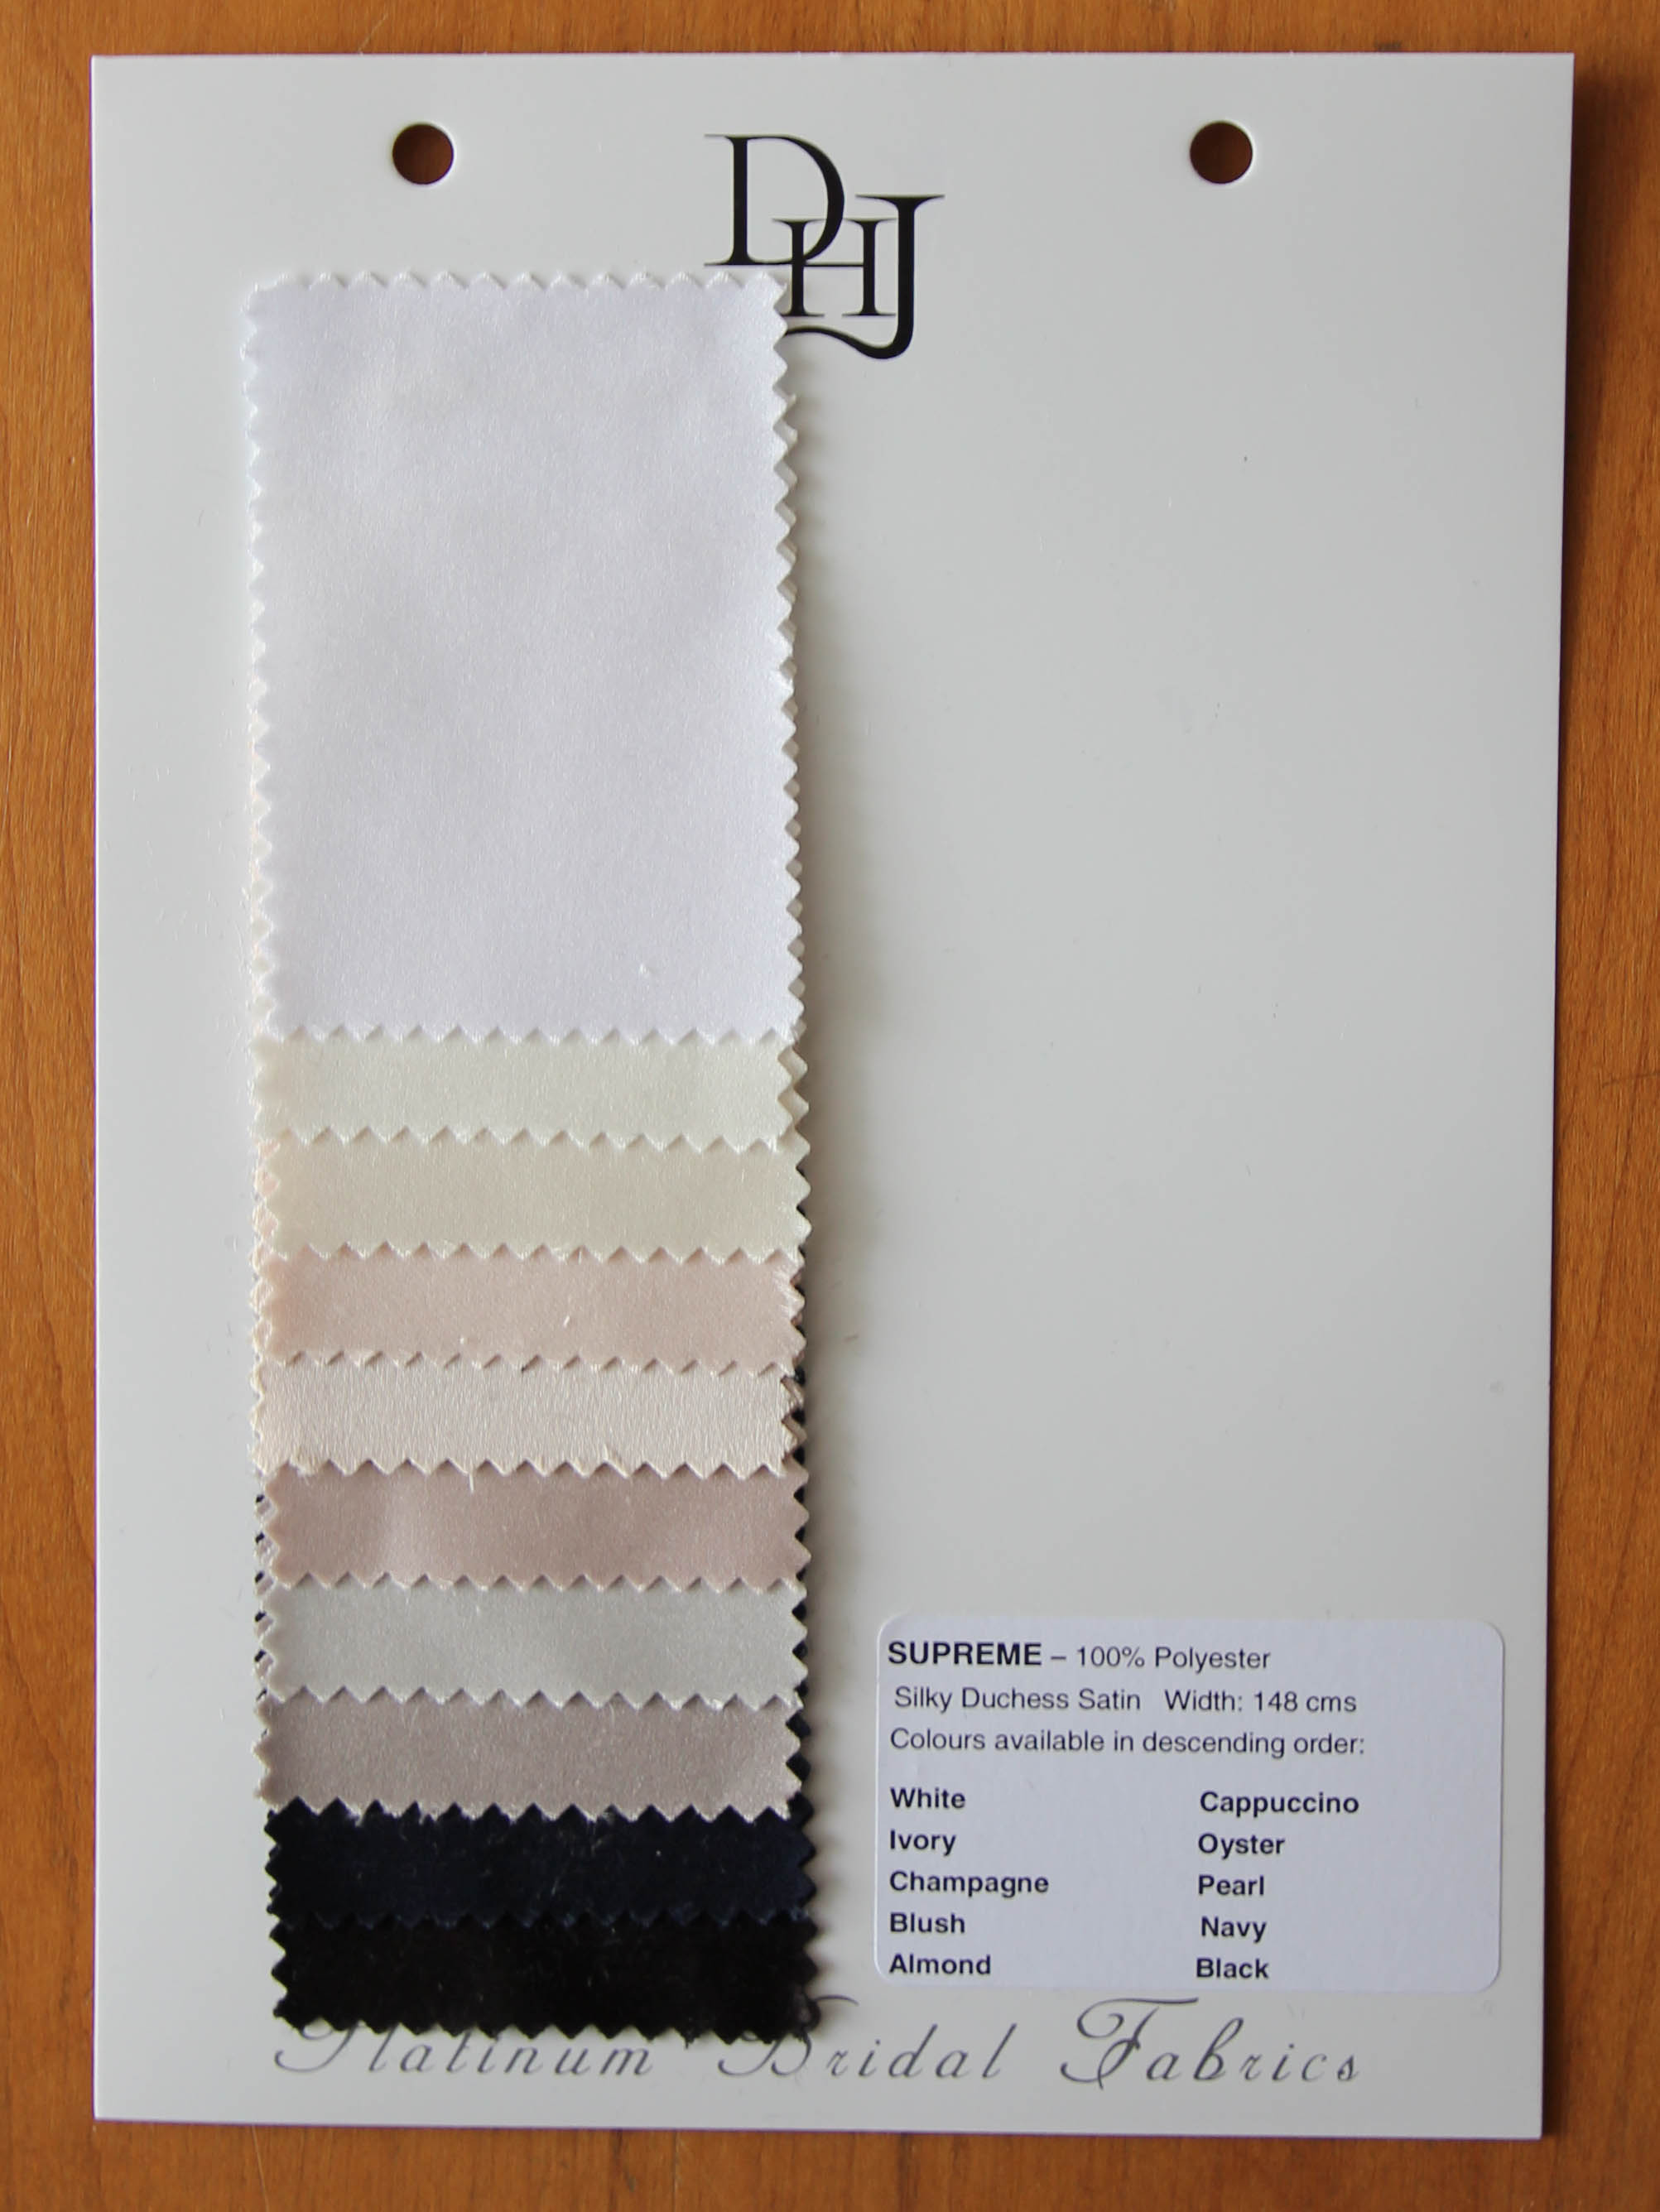 Sample Card of Polyester Satin – Supreme